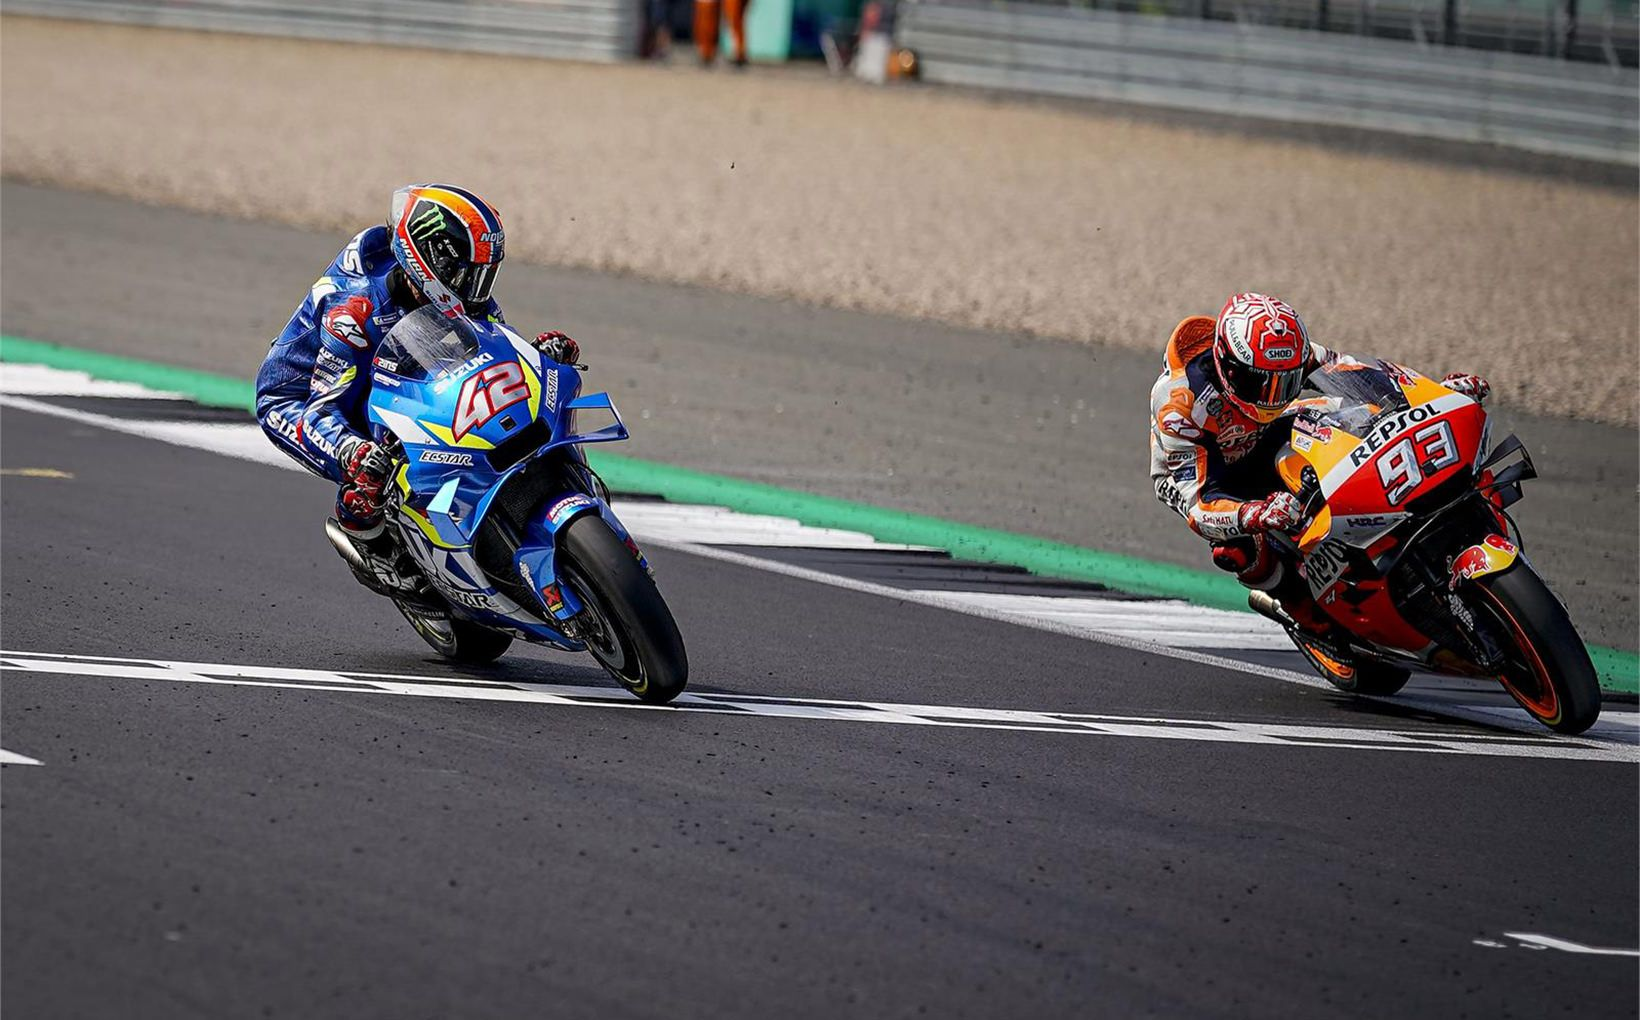 Alex Rins and Marc Marquez